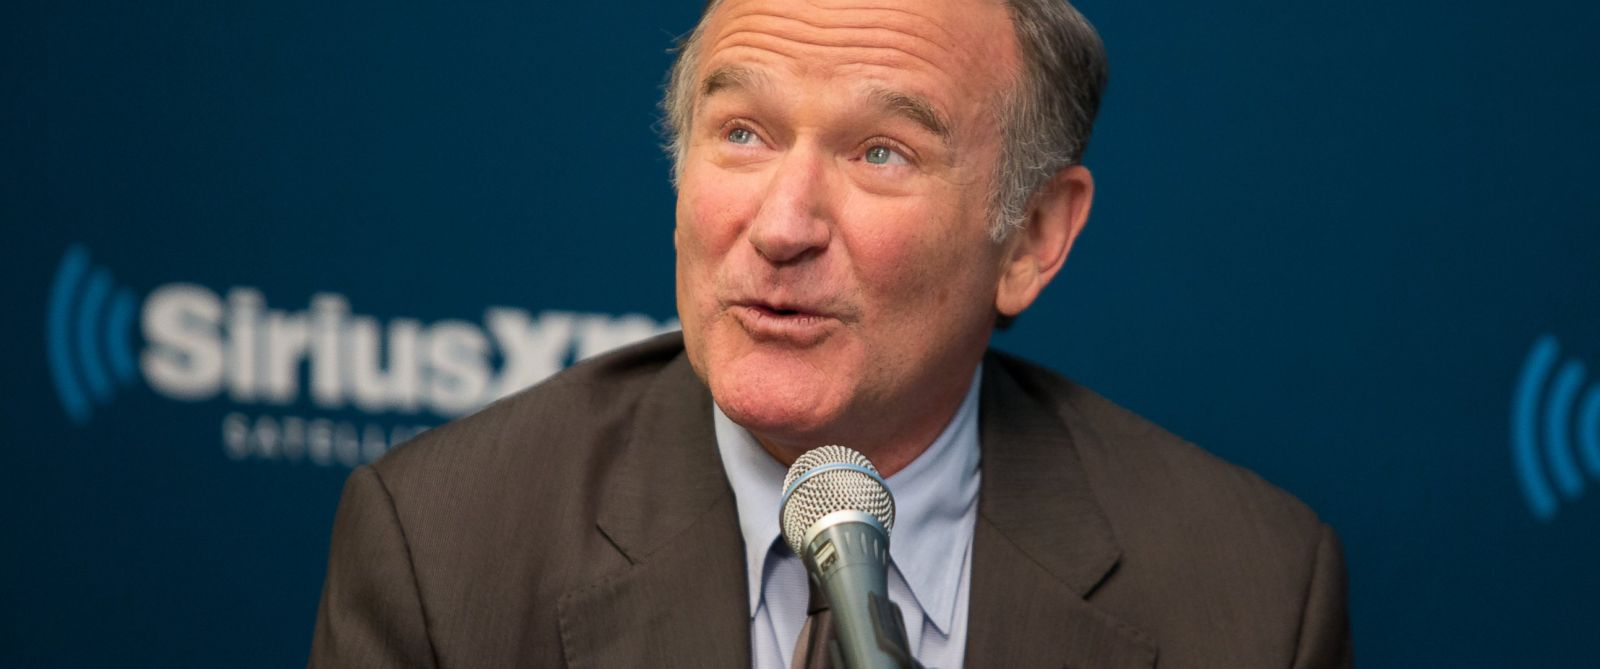 PHOTO: This Sept. 25, 2013 photo released by SiriusXM radio shows Robin Williams during the Entertainment Weekly Radio town hall in New York.